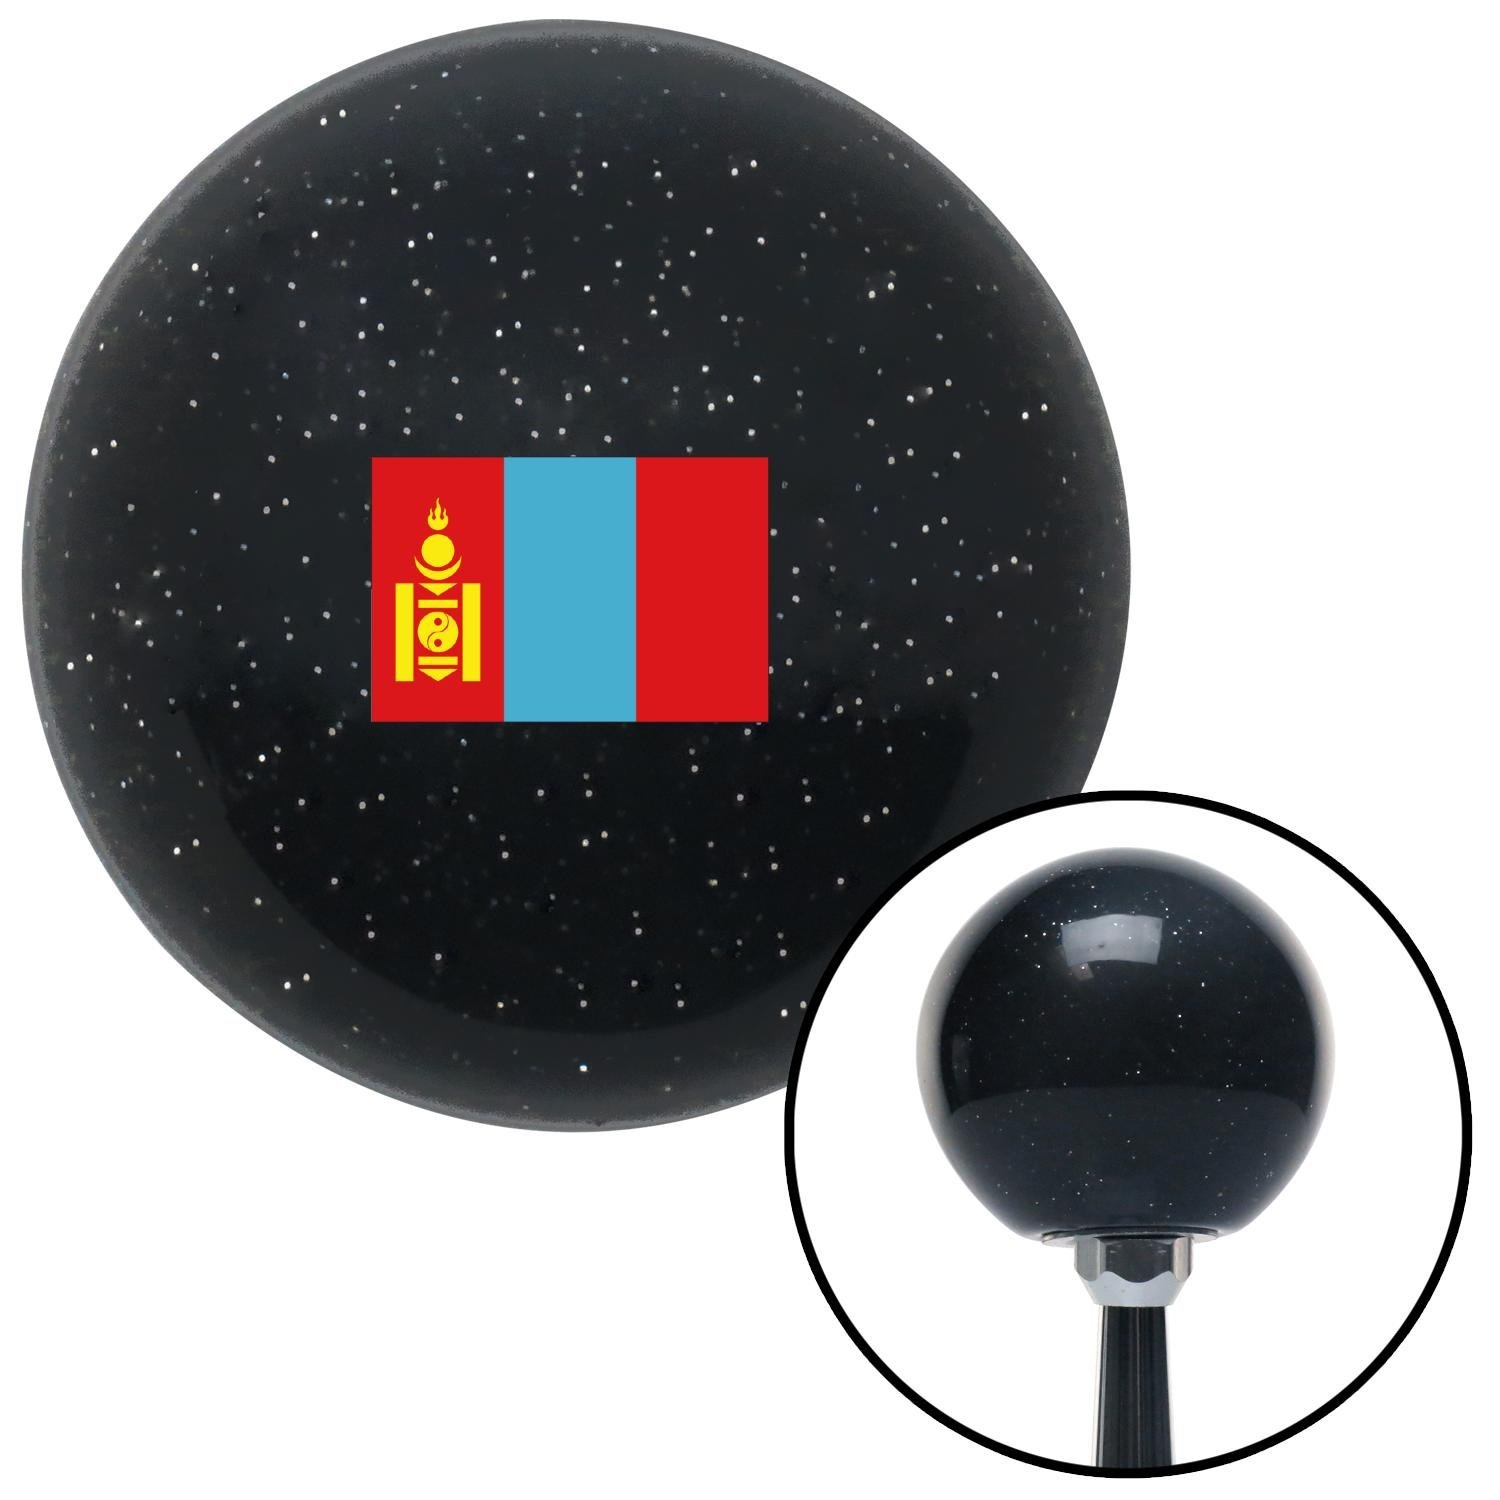 American Shifter 306193 Shift Knob Mongolia Black Metal Flake with M16 x 1.5 Insert